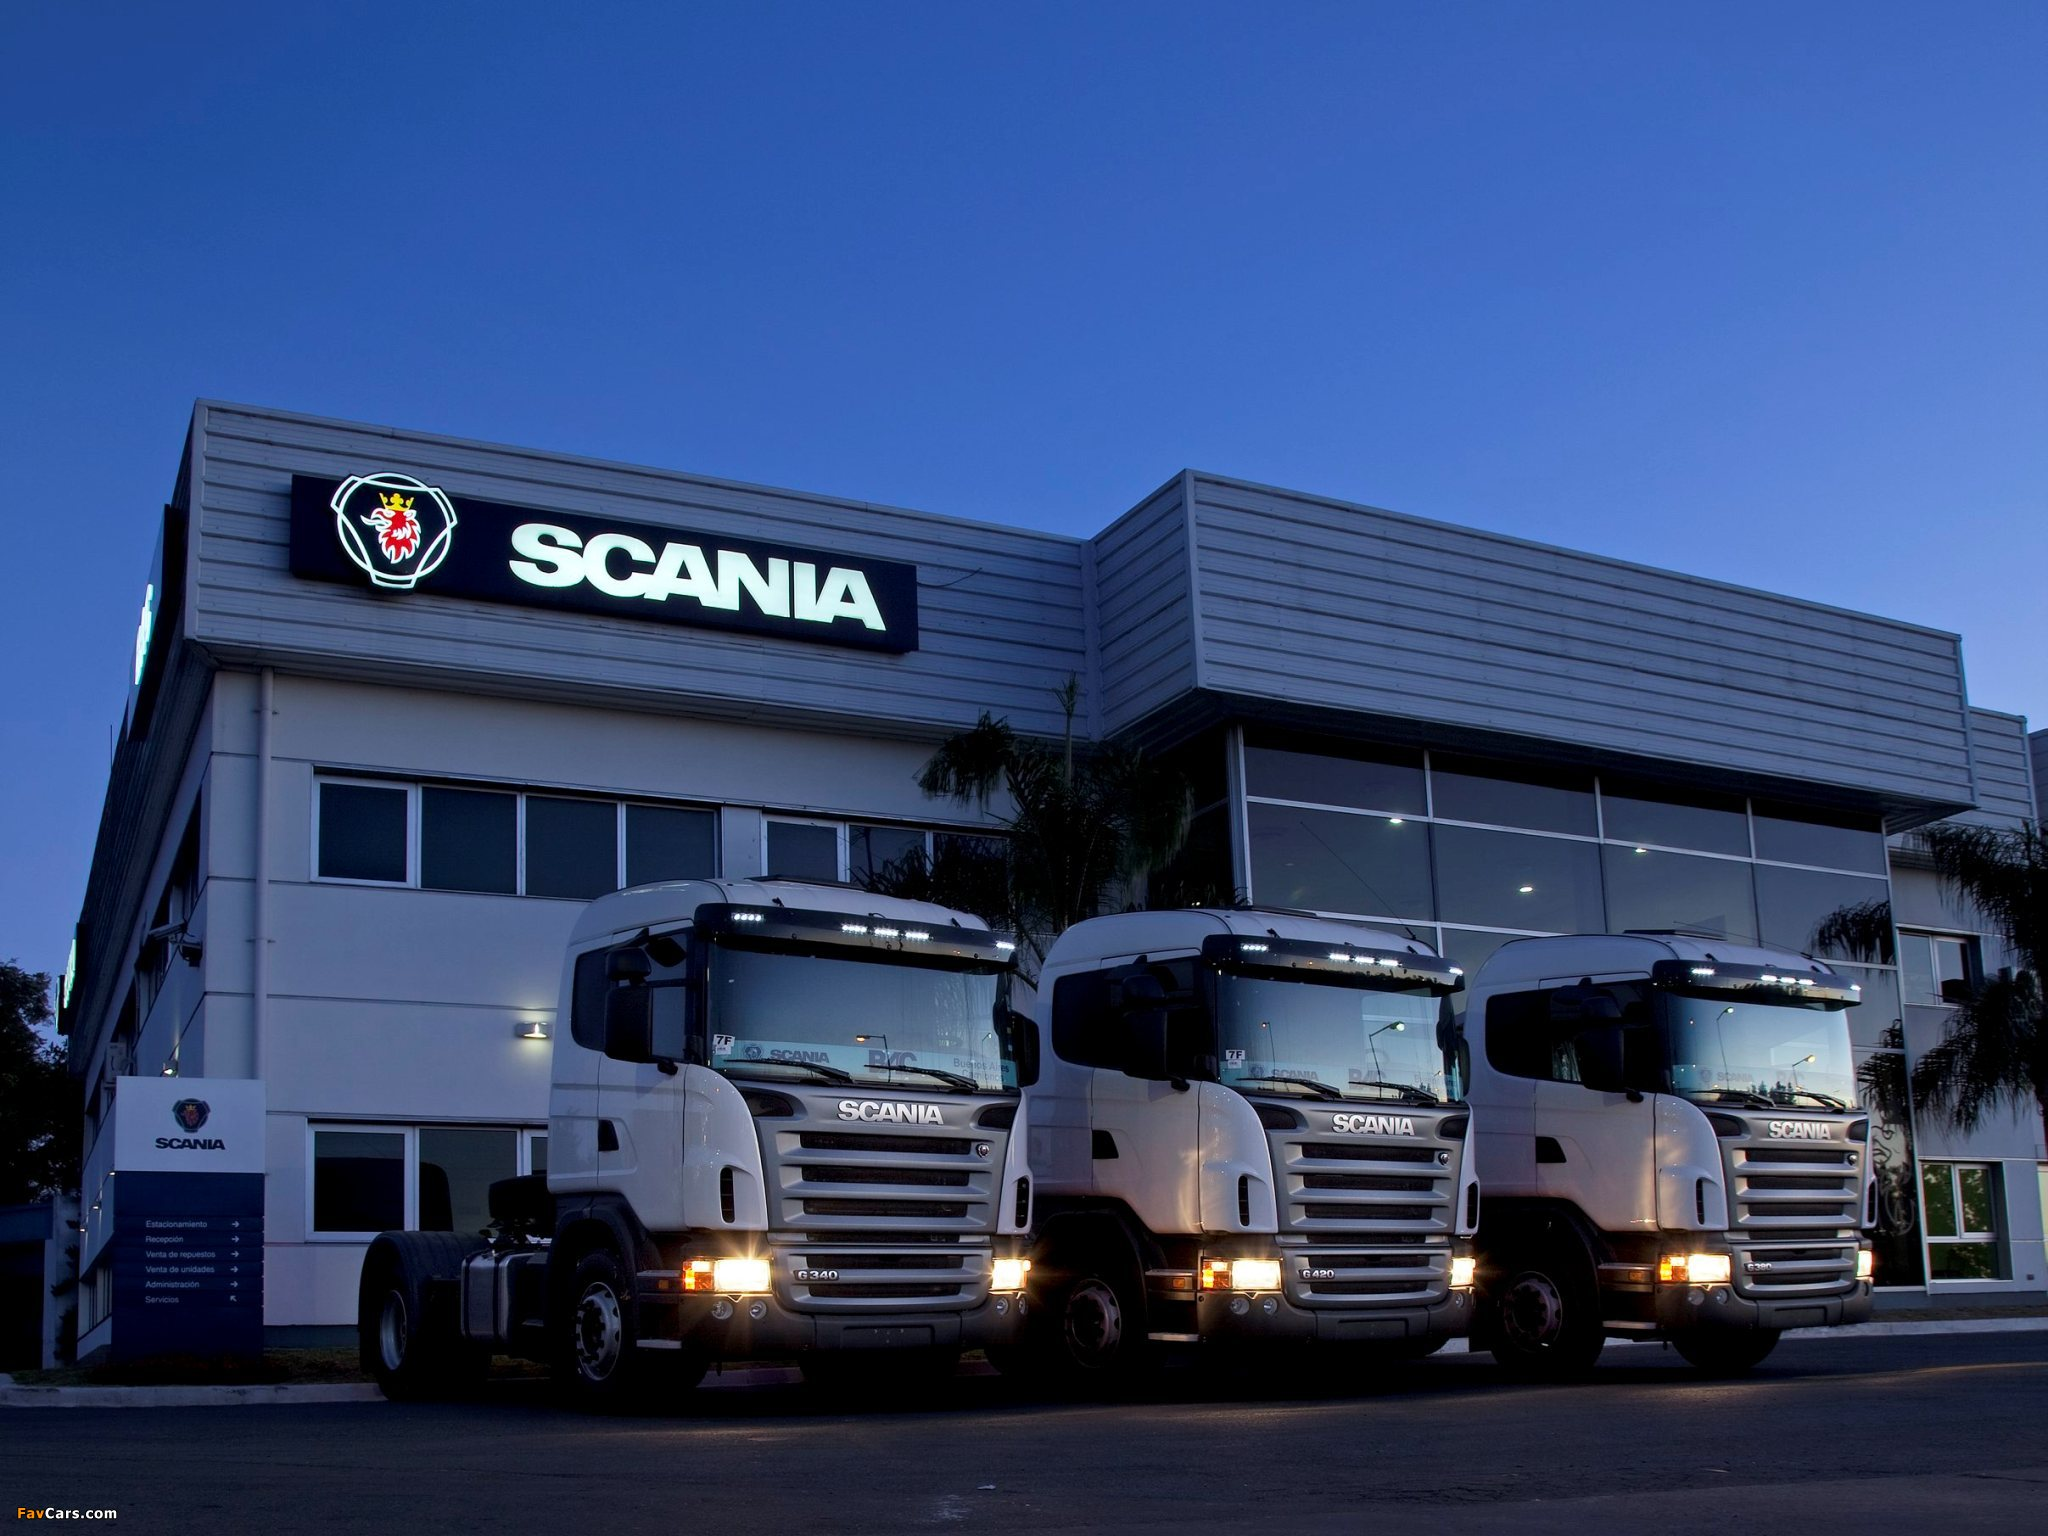 All Car Wallpapers Hd Scania G Series Wallpapers 2048x1536